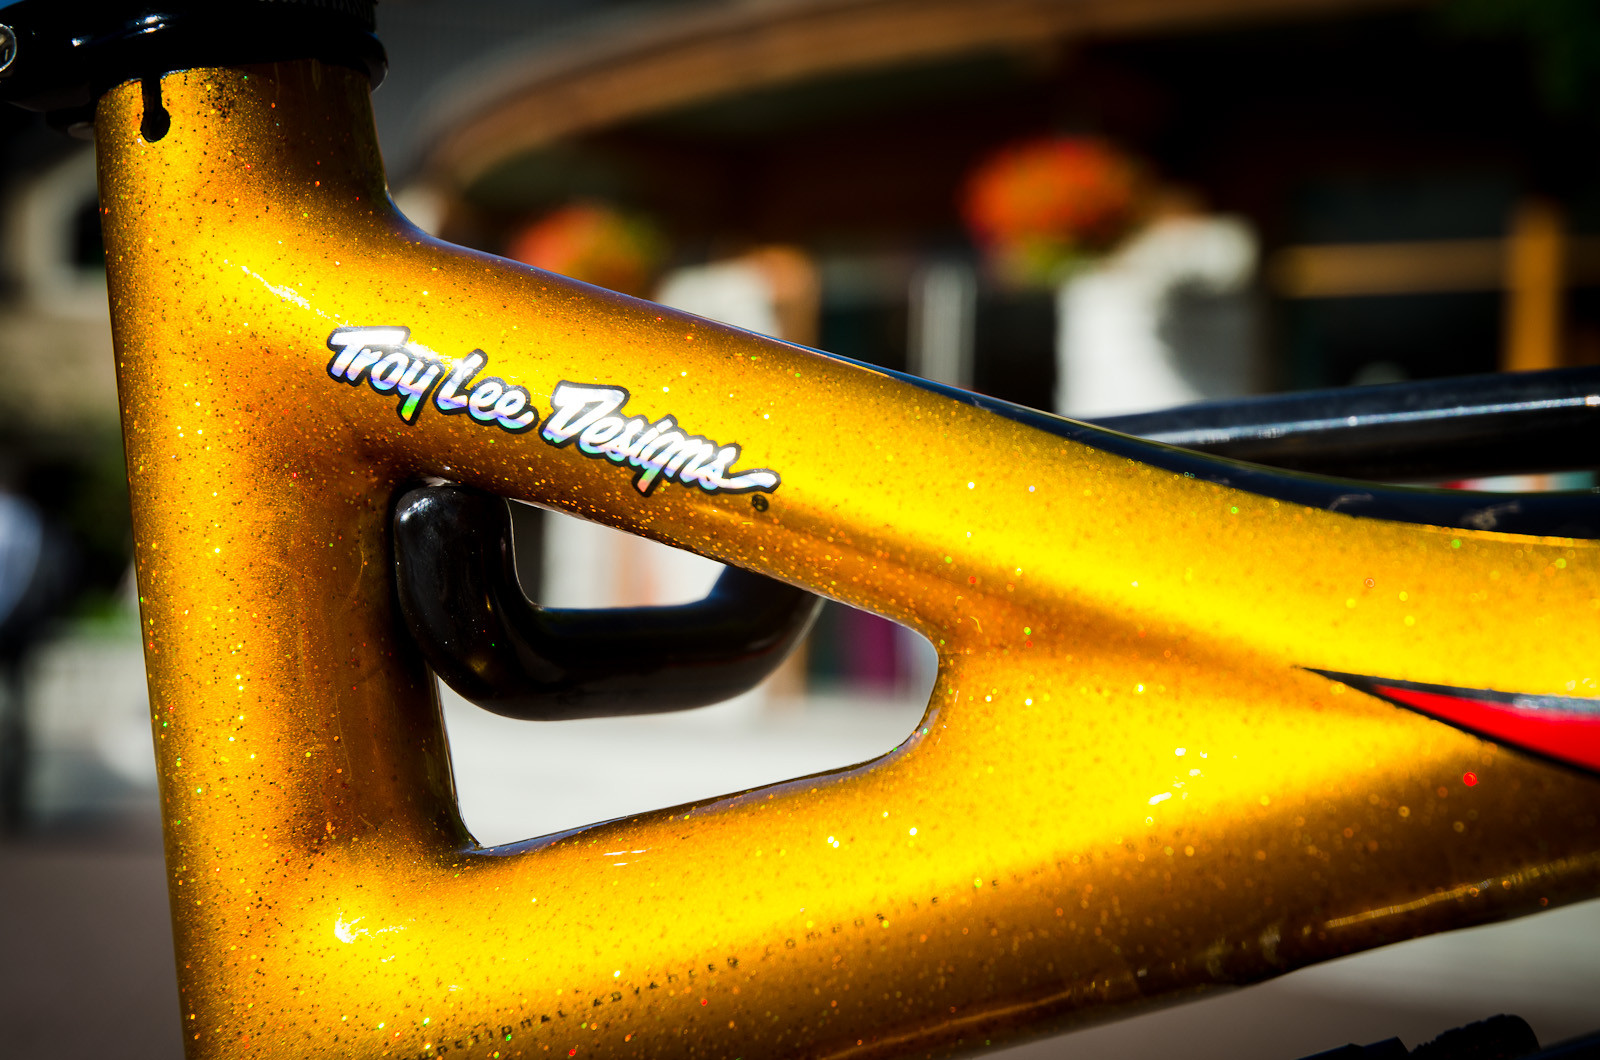 Bling Bling! - First Look: Limited Edition 2013 Specialized / Troy Lee Designs Frames - Mountain Biking Pictures - Vital MTB